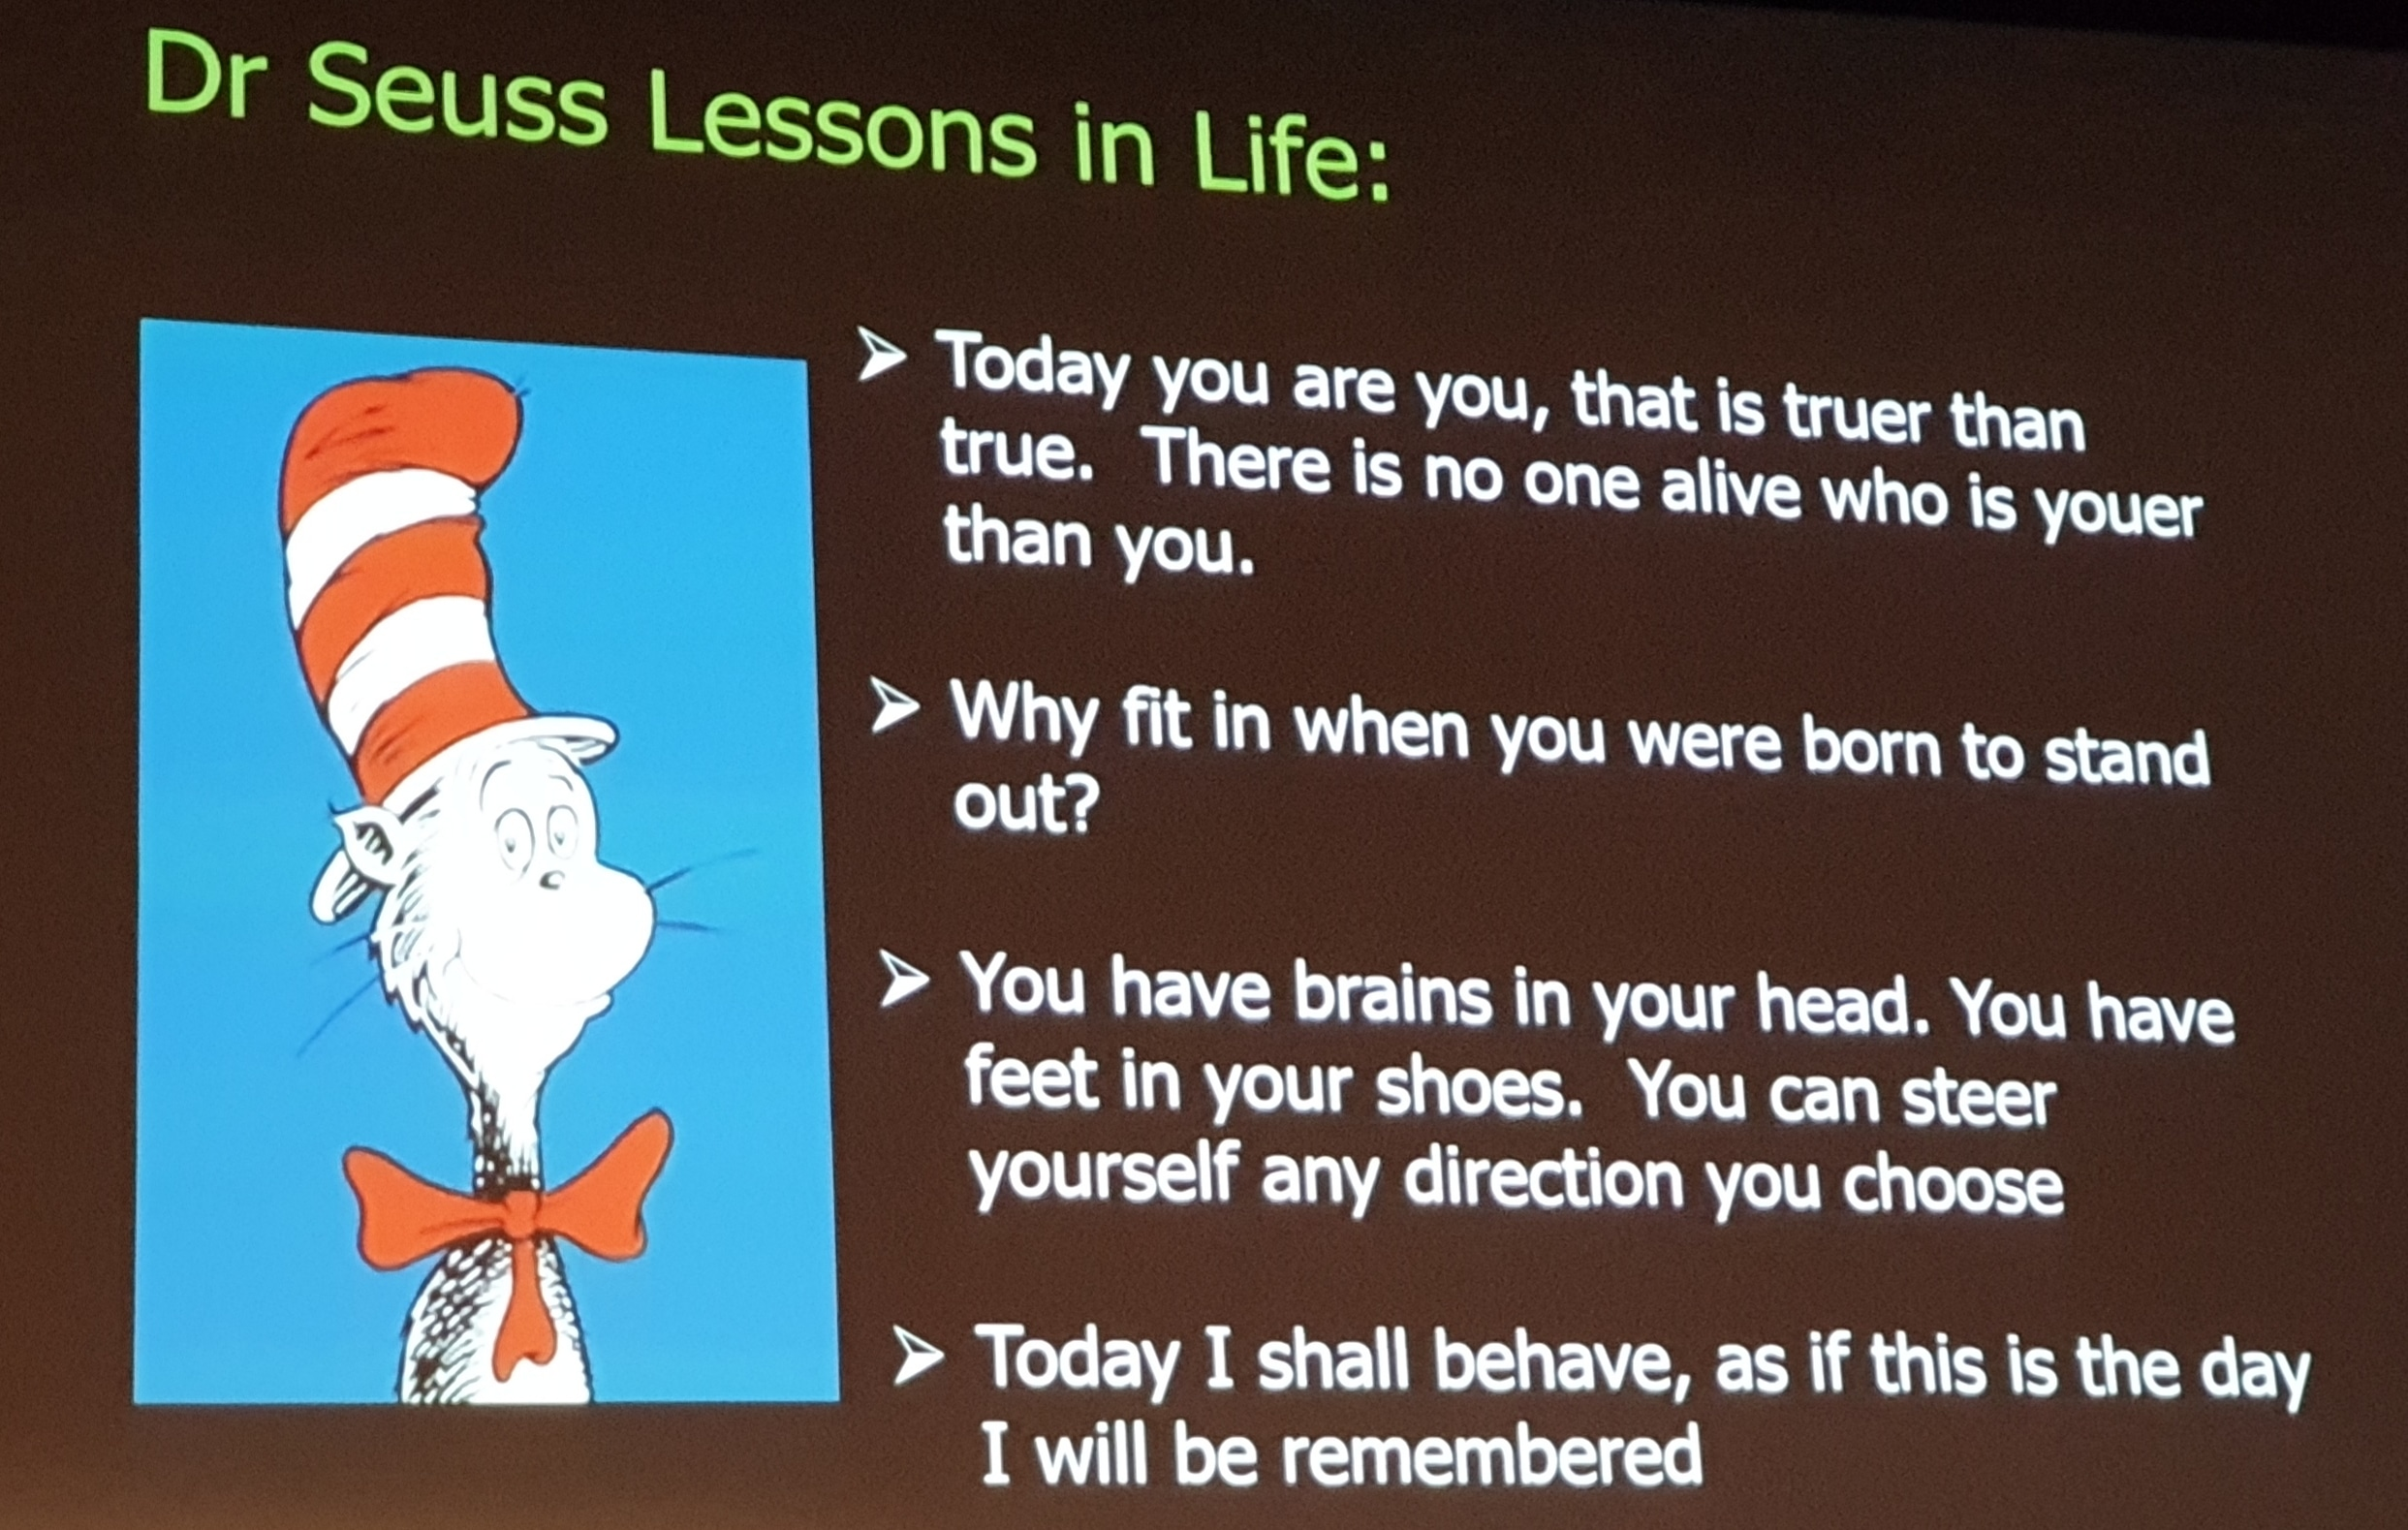 Love these words of wisdom from Dr Seuss!